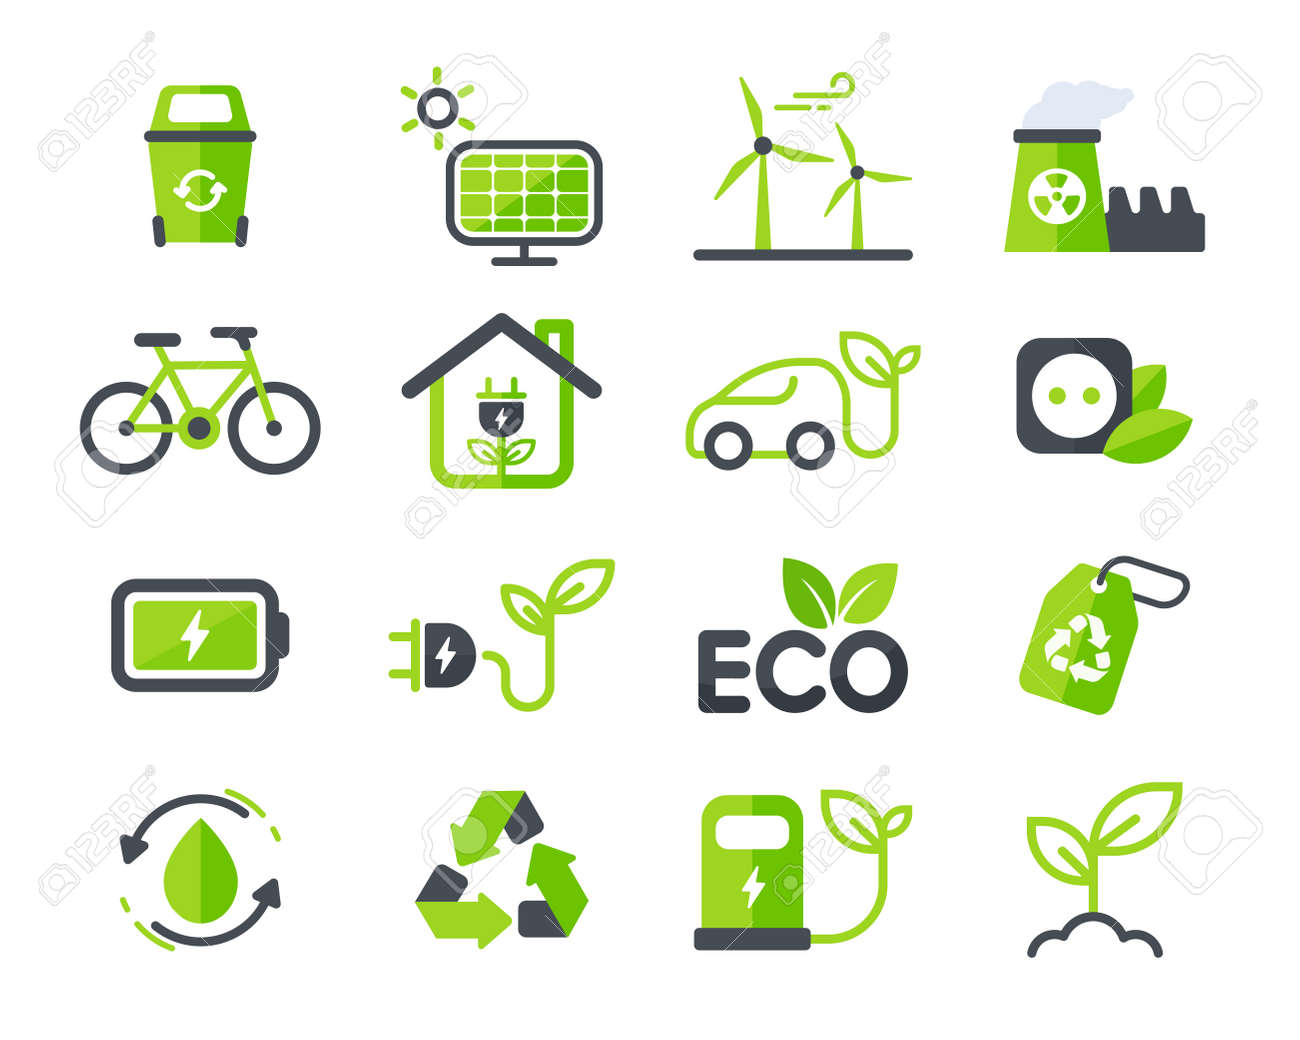 Eco icon. Ecology vector design The concept of caring for the environment by using natural energy. - 169443109